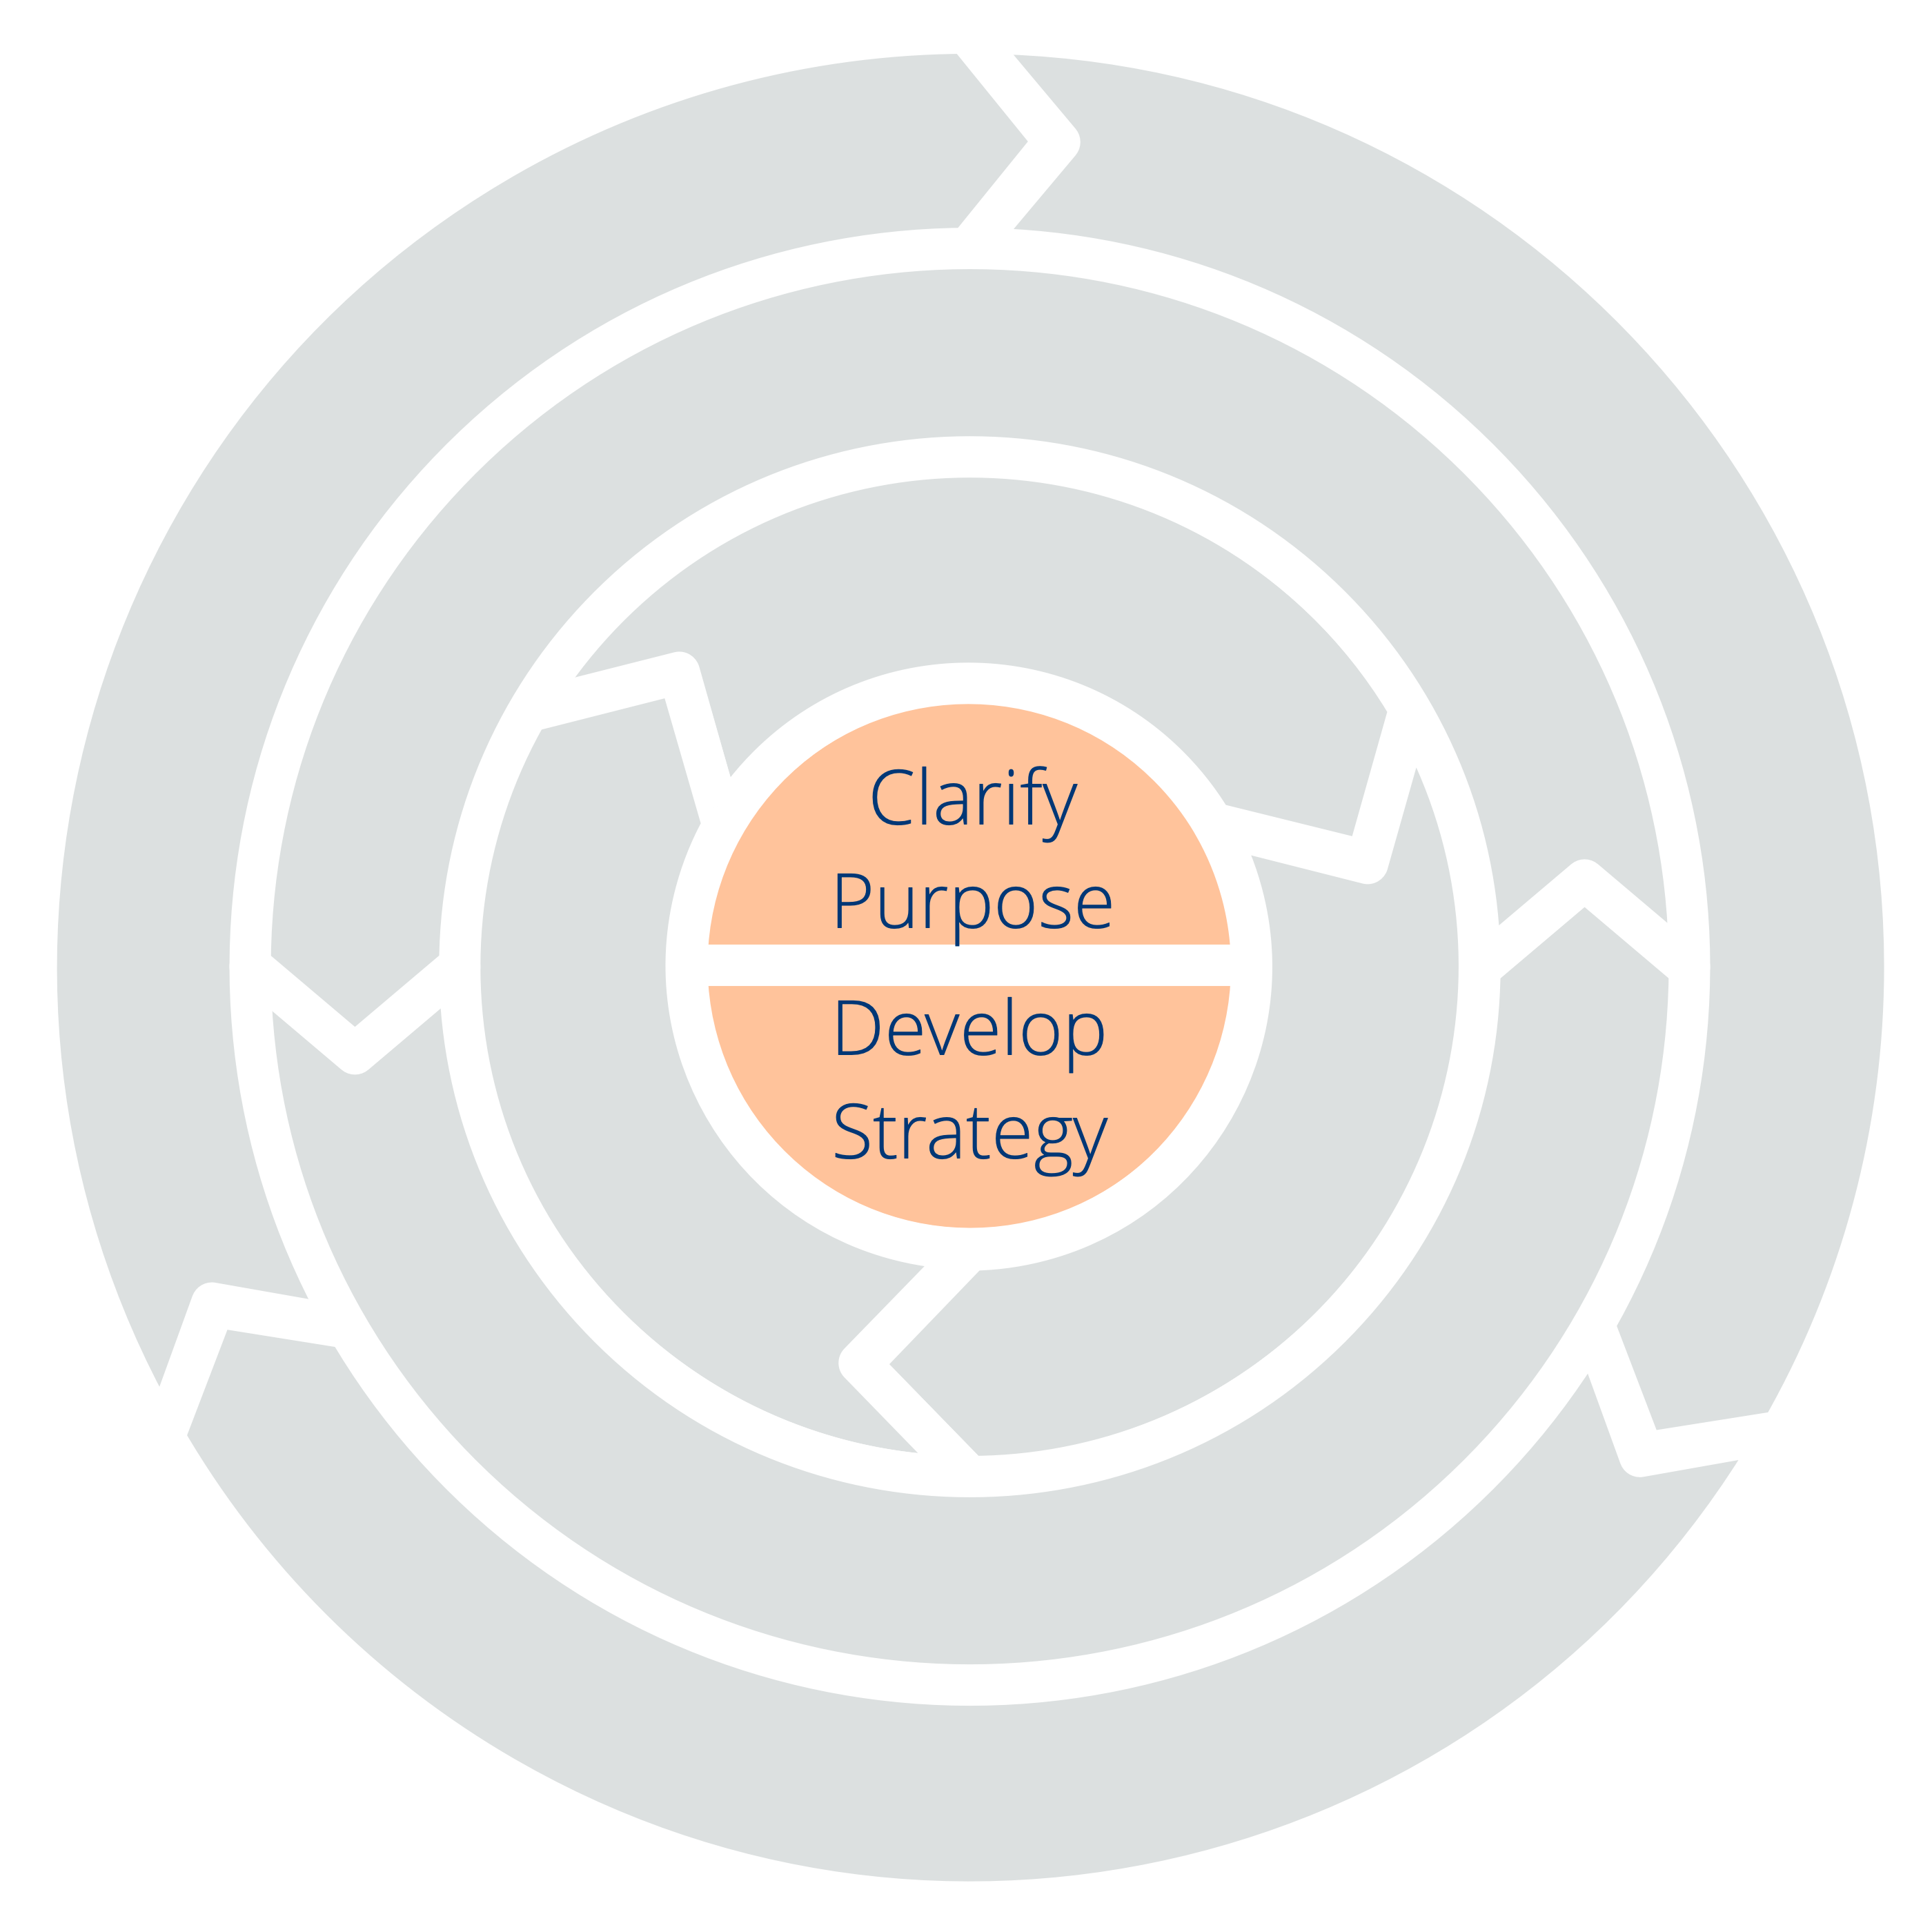 Two Principles for Orientation: Clarify Purpose – Develop Strategy